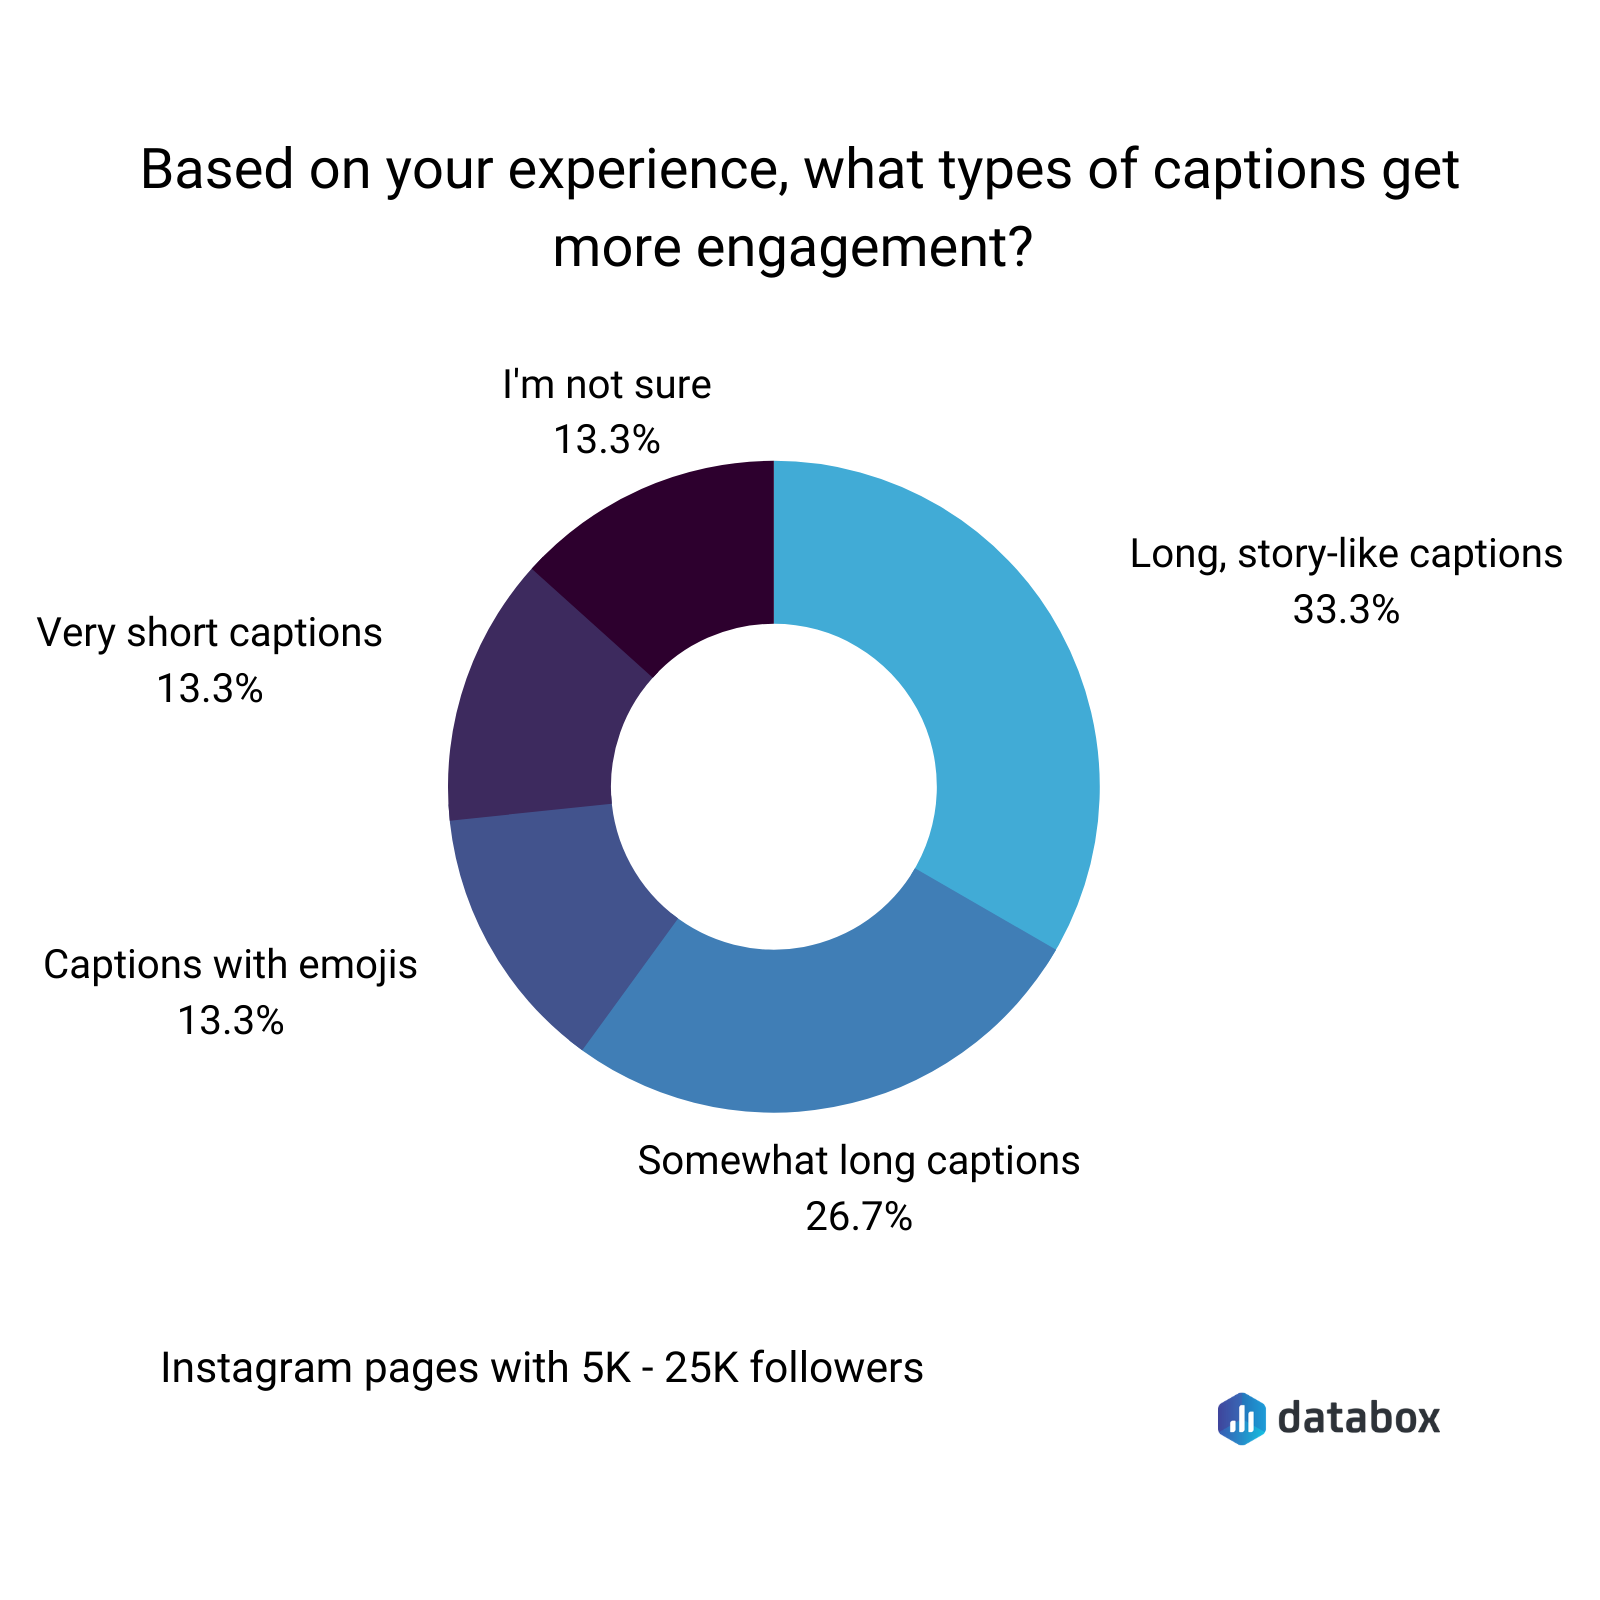 based on your experience, what types of captions get more engagement